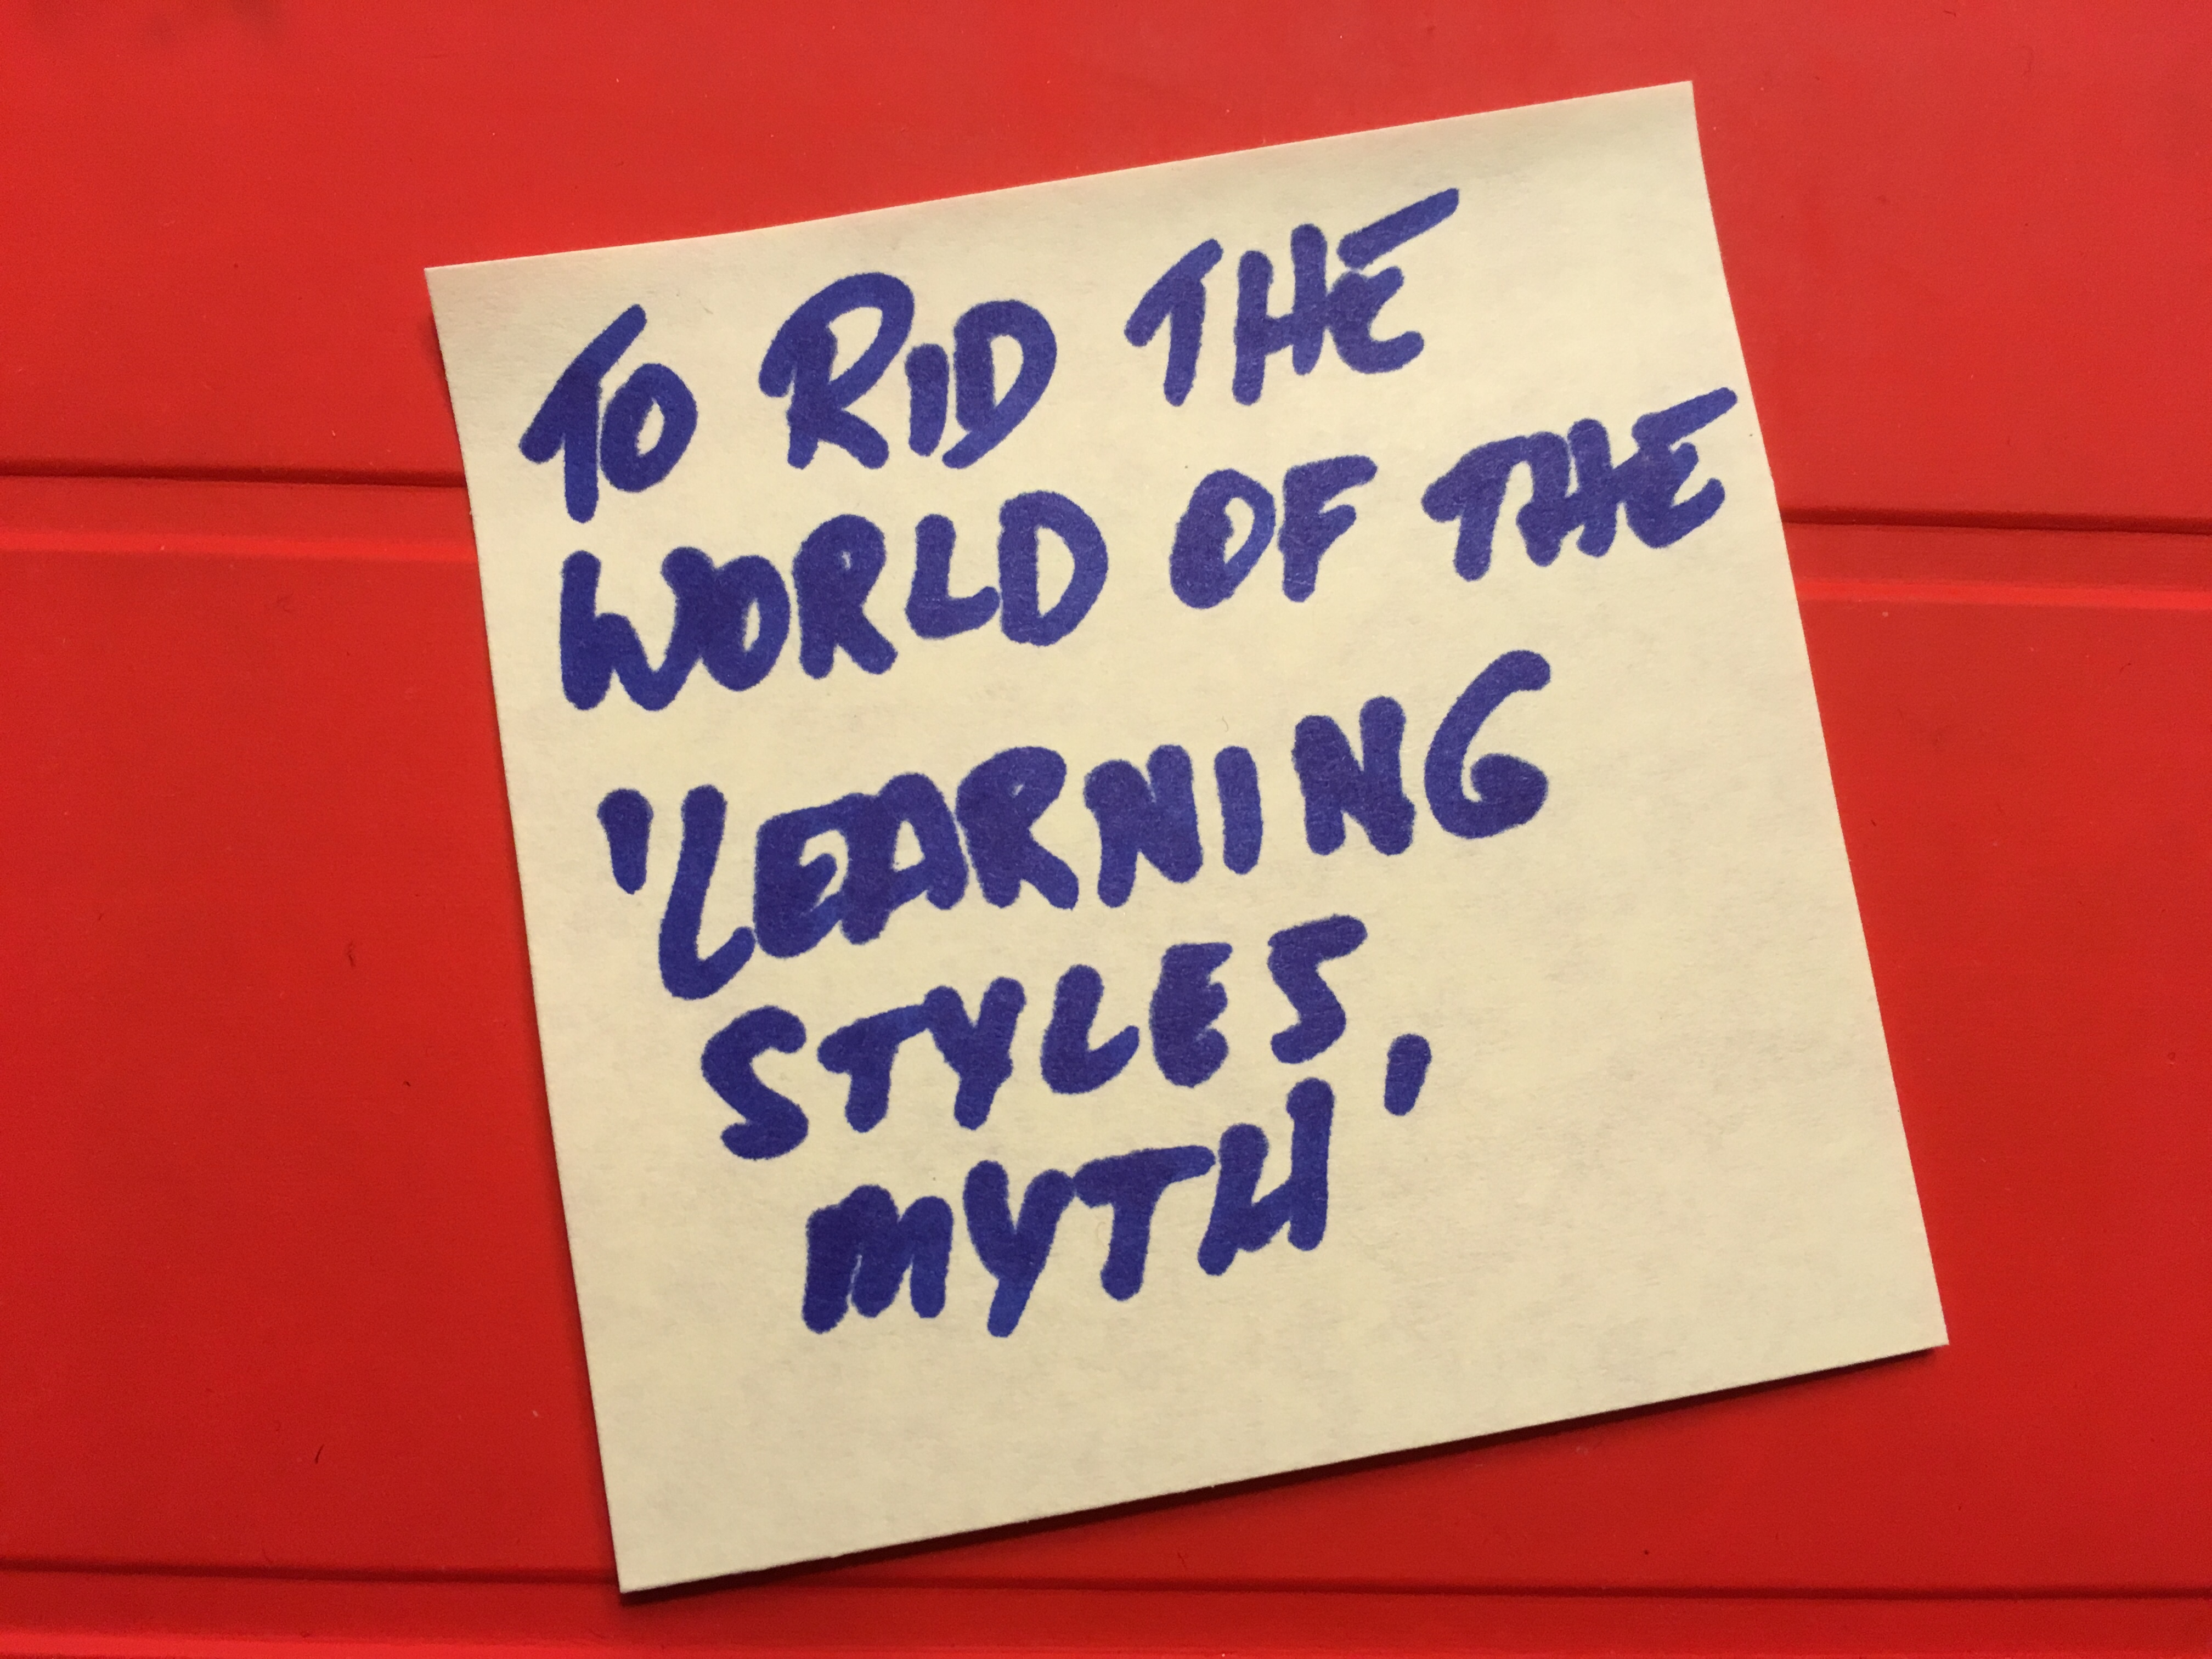 Say no to learning styles